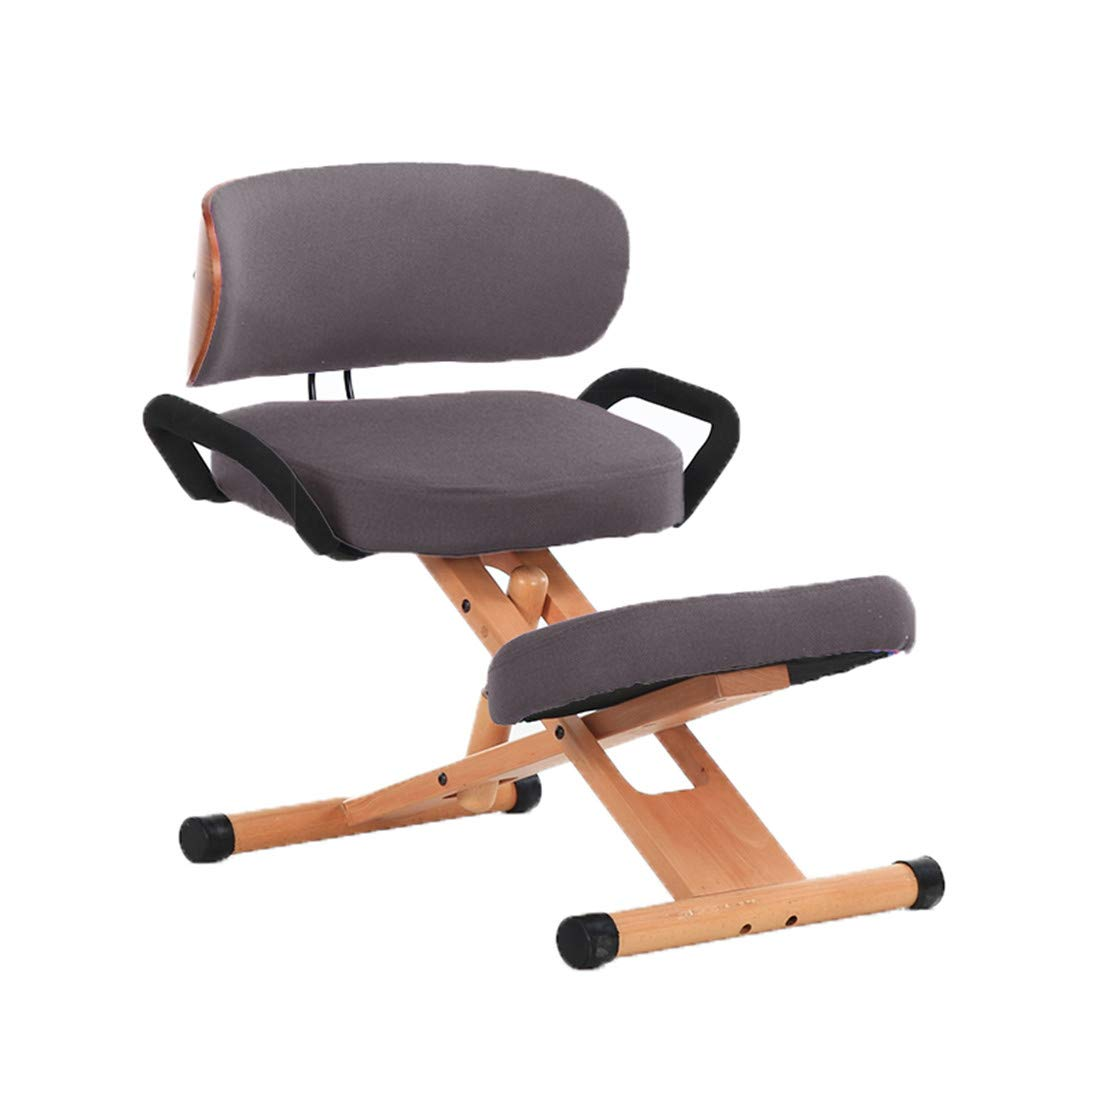 Wood Kneeling Chairs Balancing Body Office Orthopedic Stool with Handle Cushions Adjustable Ergonomic Relieving Back Orthopedic and Neck Pain